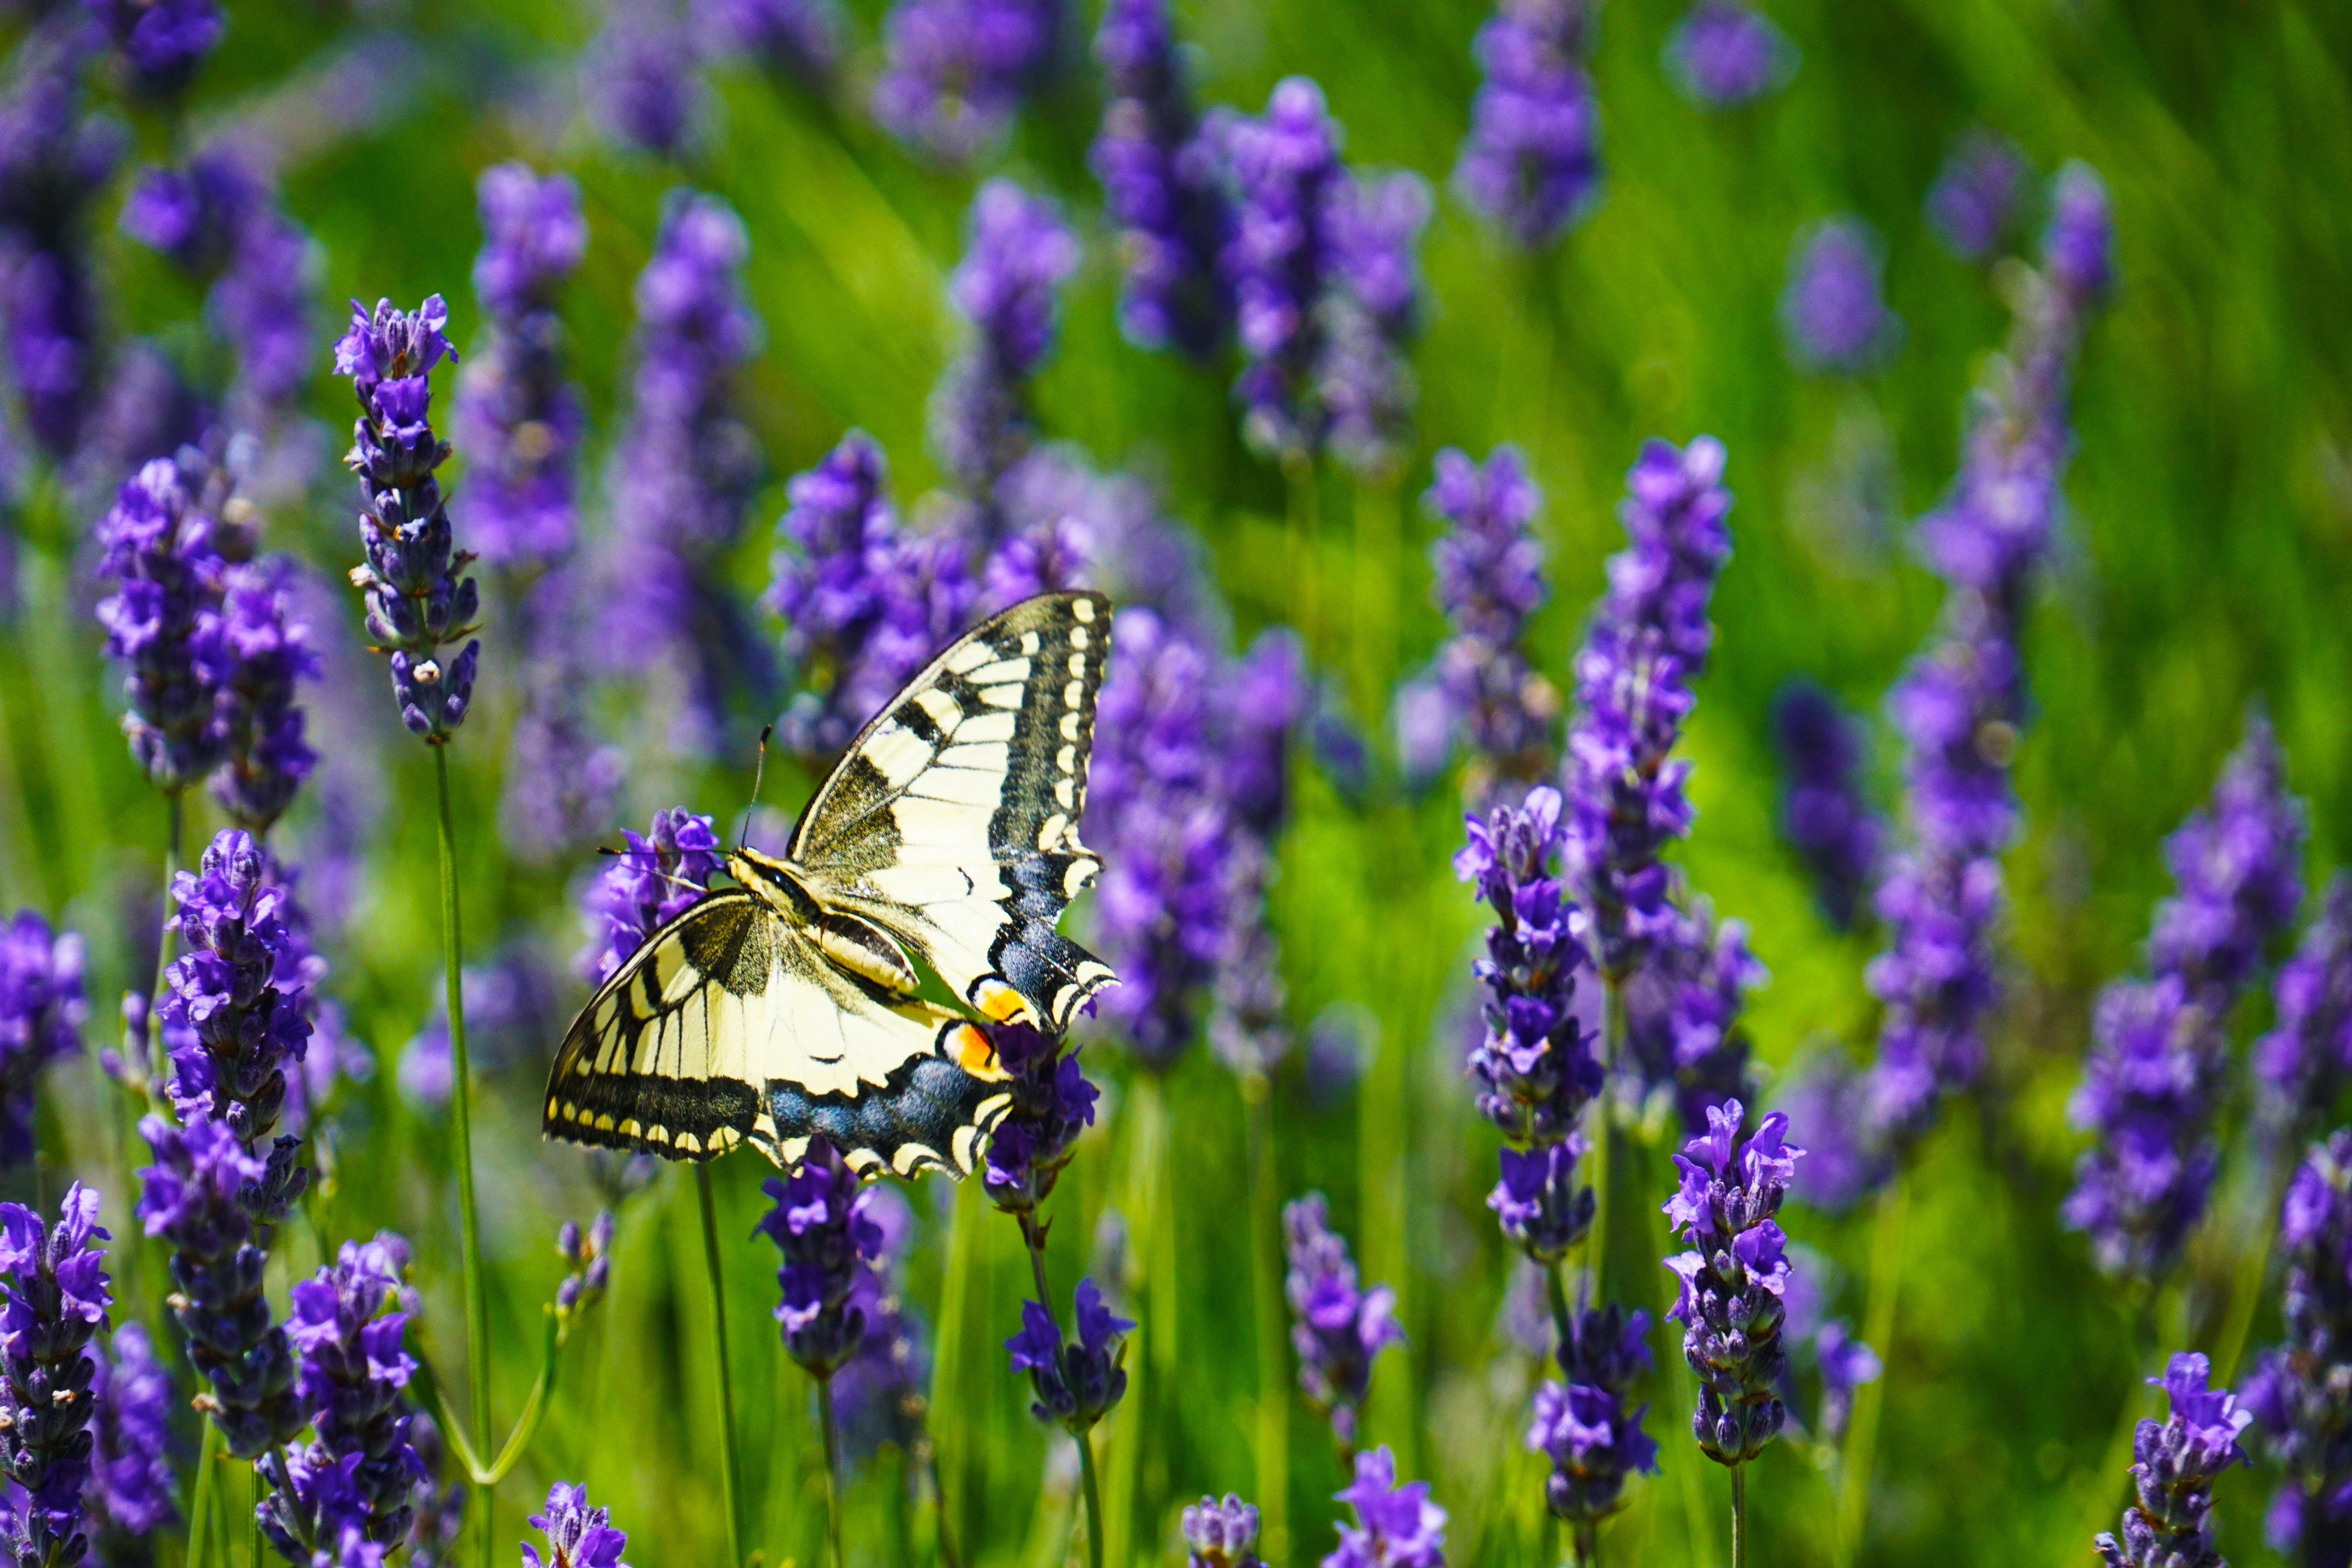 Close-Up Photography of Butterfly Perched on Lavender Flower